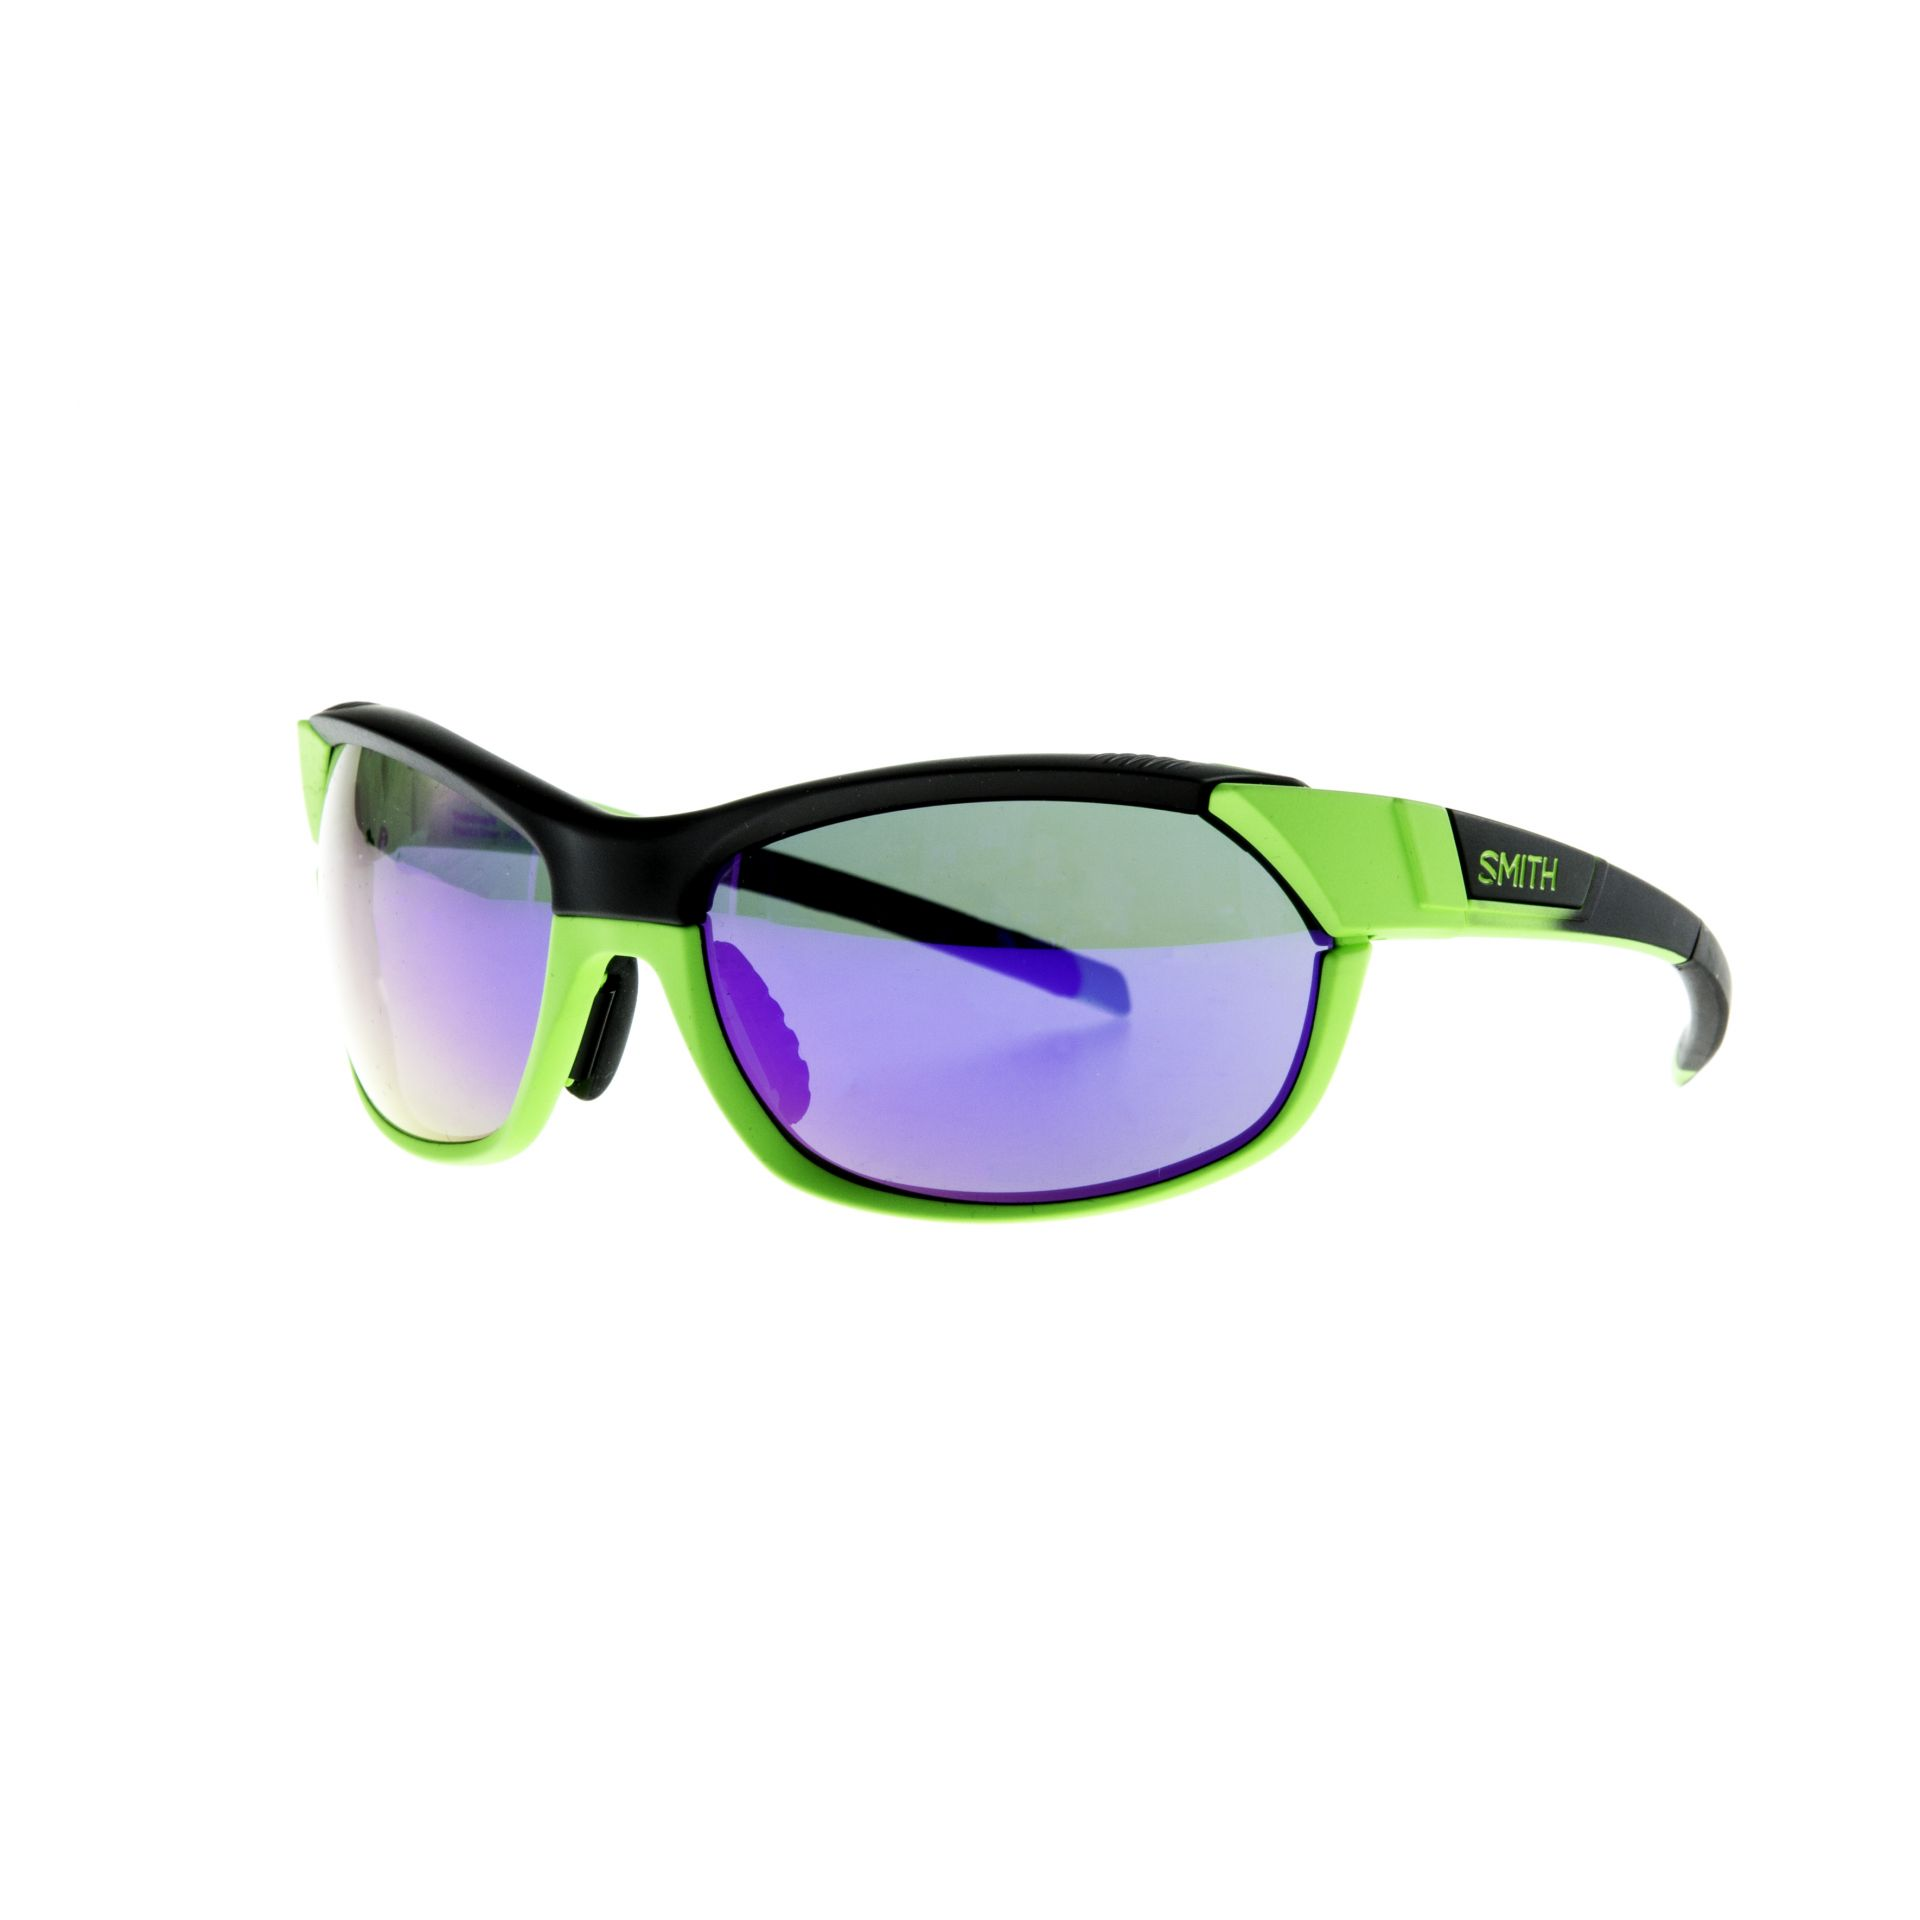 Lunettes Smith Optics PivLock Overdrive Anthracite Vert Fluo/Purple Sol-X